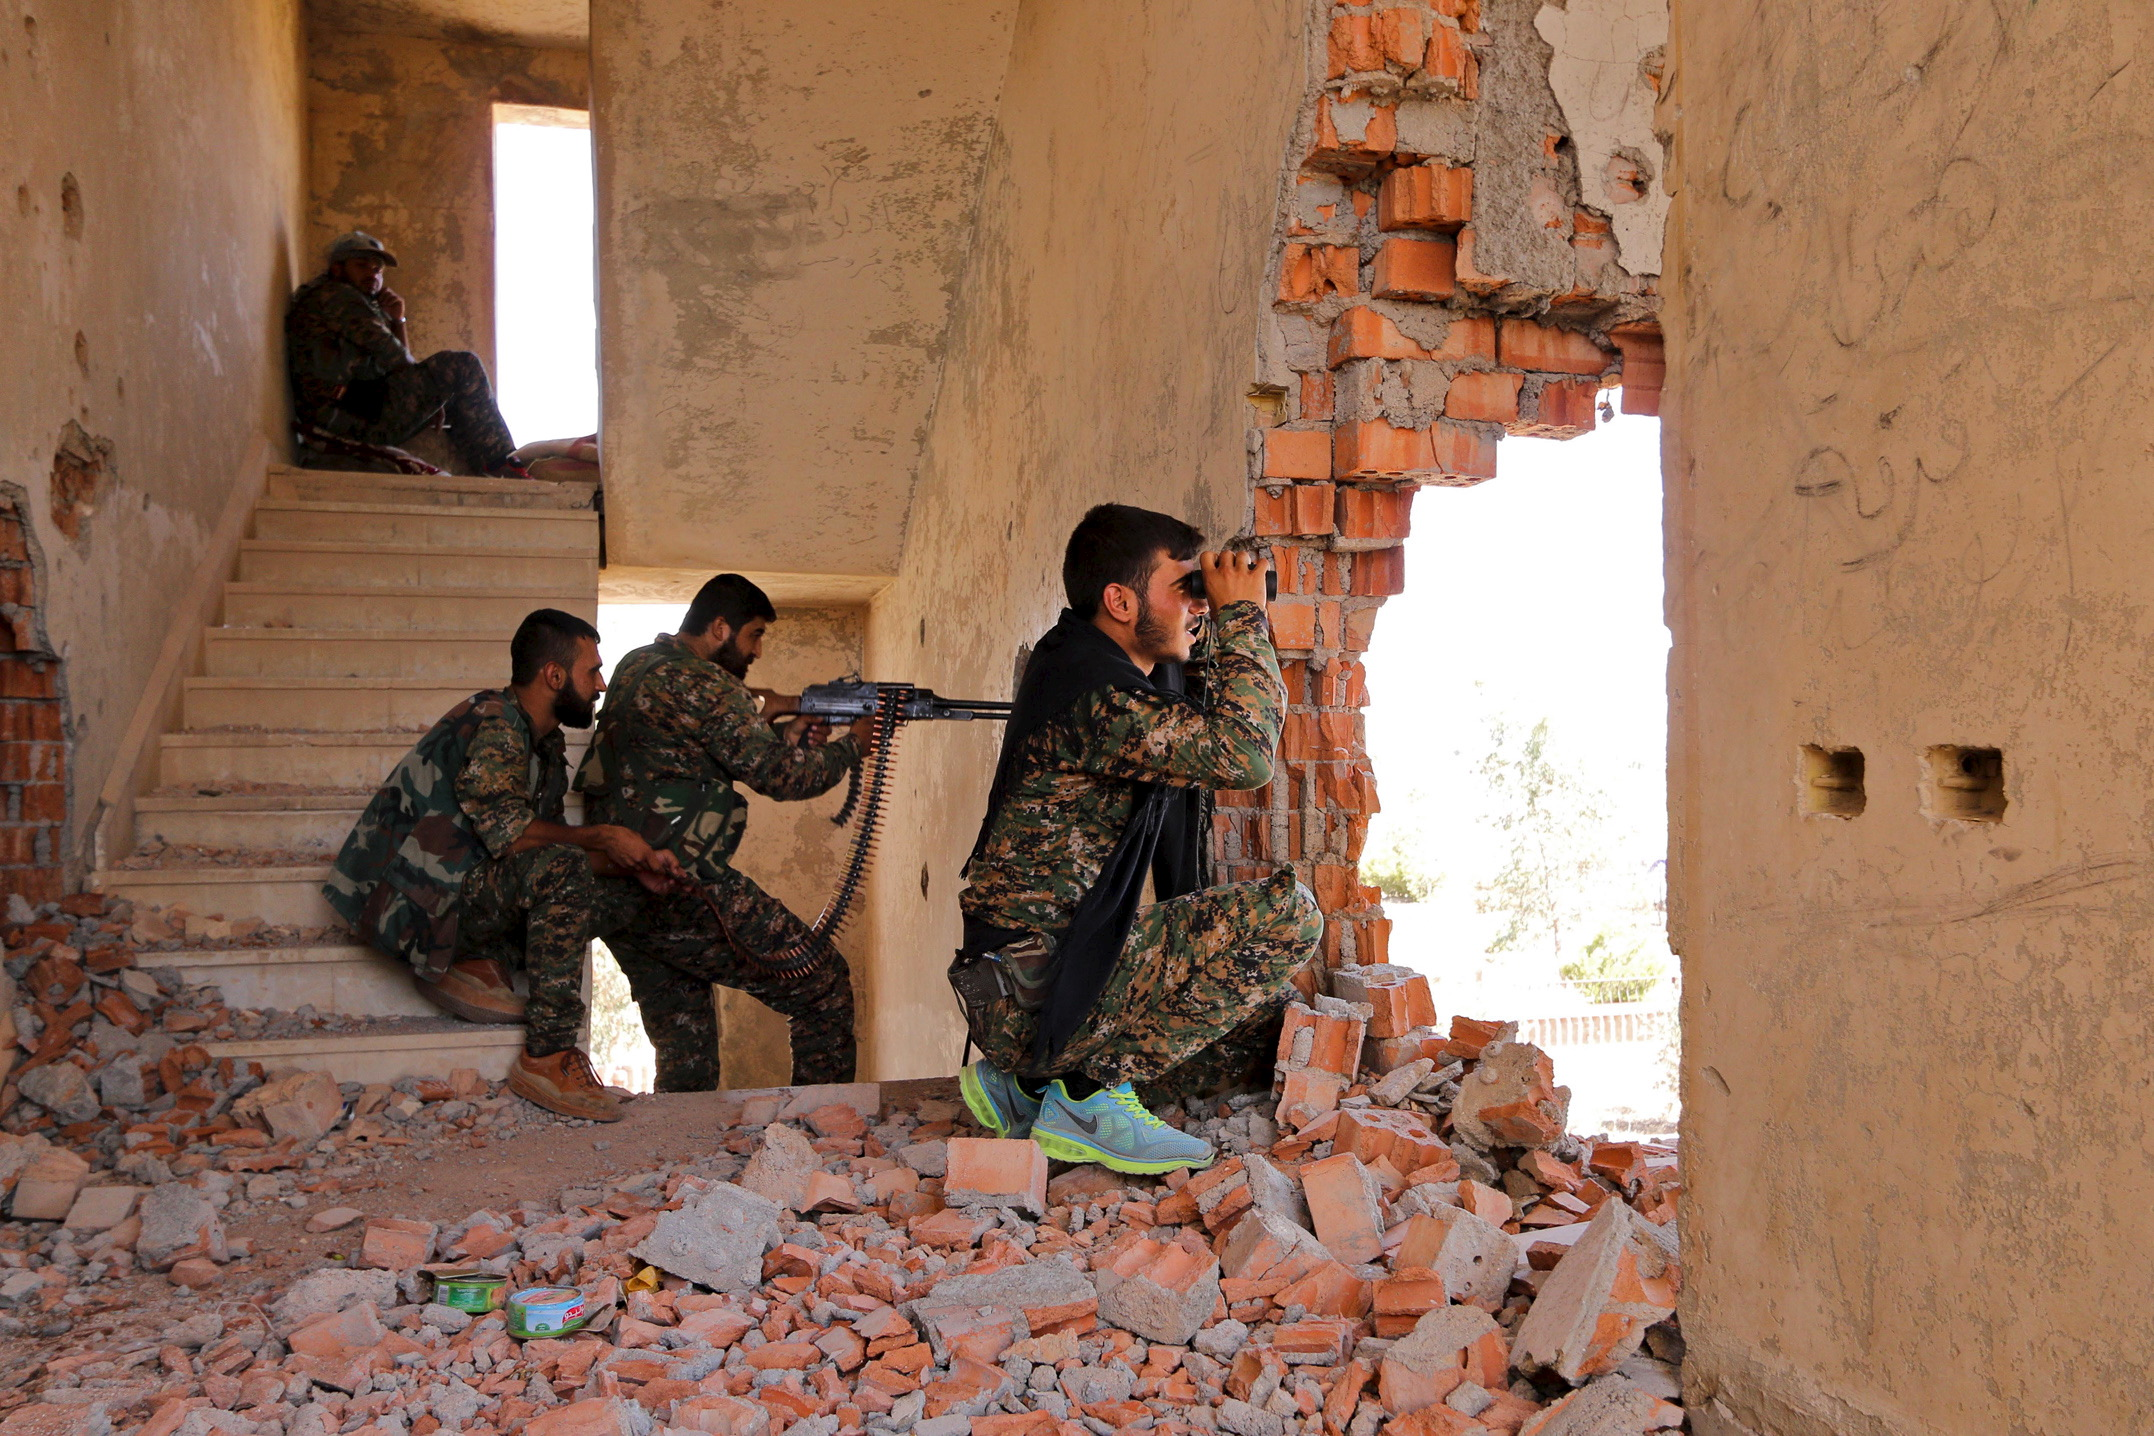 Kurdish People's Protection Units (YPG) fighters take up positions inside a damaged building in al-Vilat al-Homor neighborhood in Hasaka city, as they monitor the movements of Islamic State fighters who are stationed in Ghwayran neighborhood in Hasak...